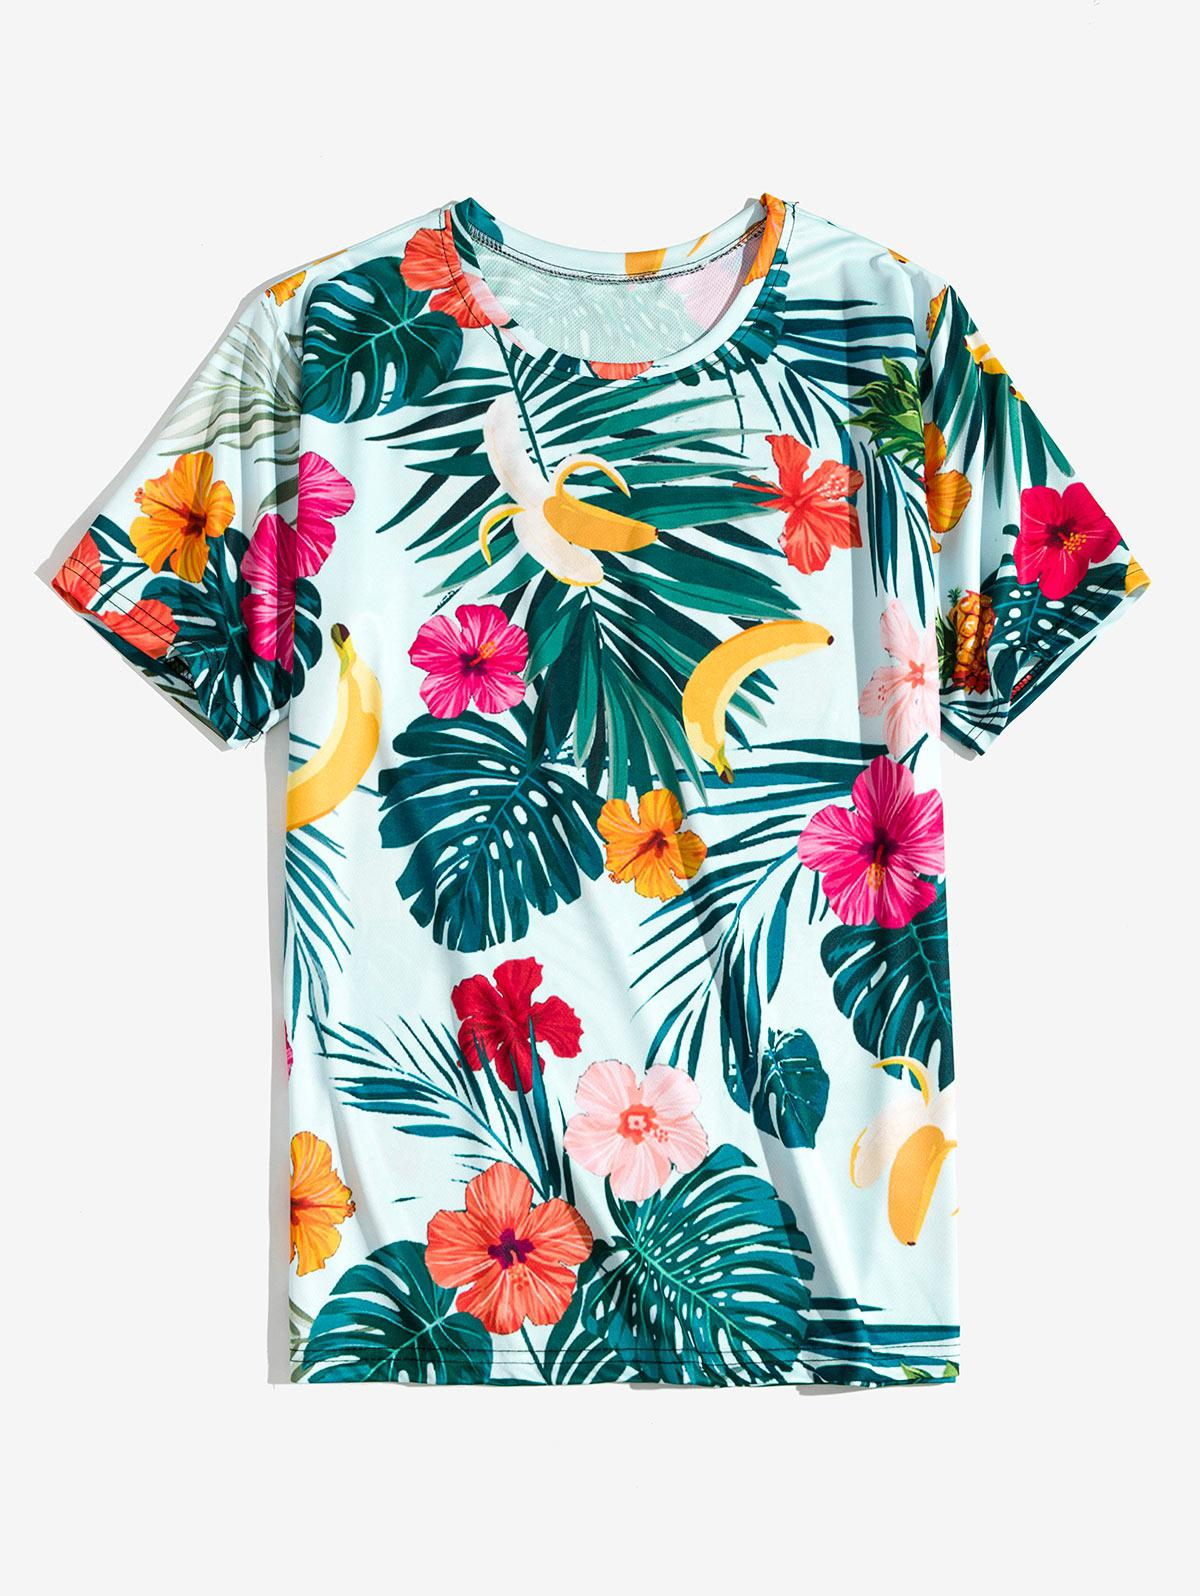 Tropical Flower Leaf Banana Print Vacation T-shirt фото